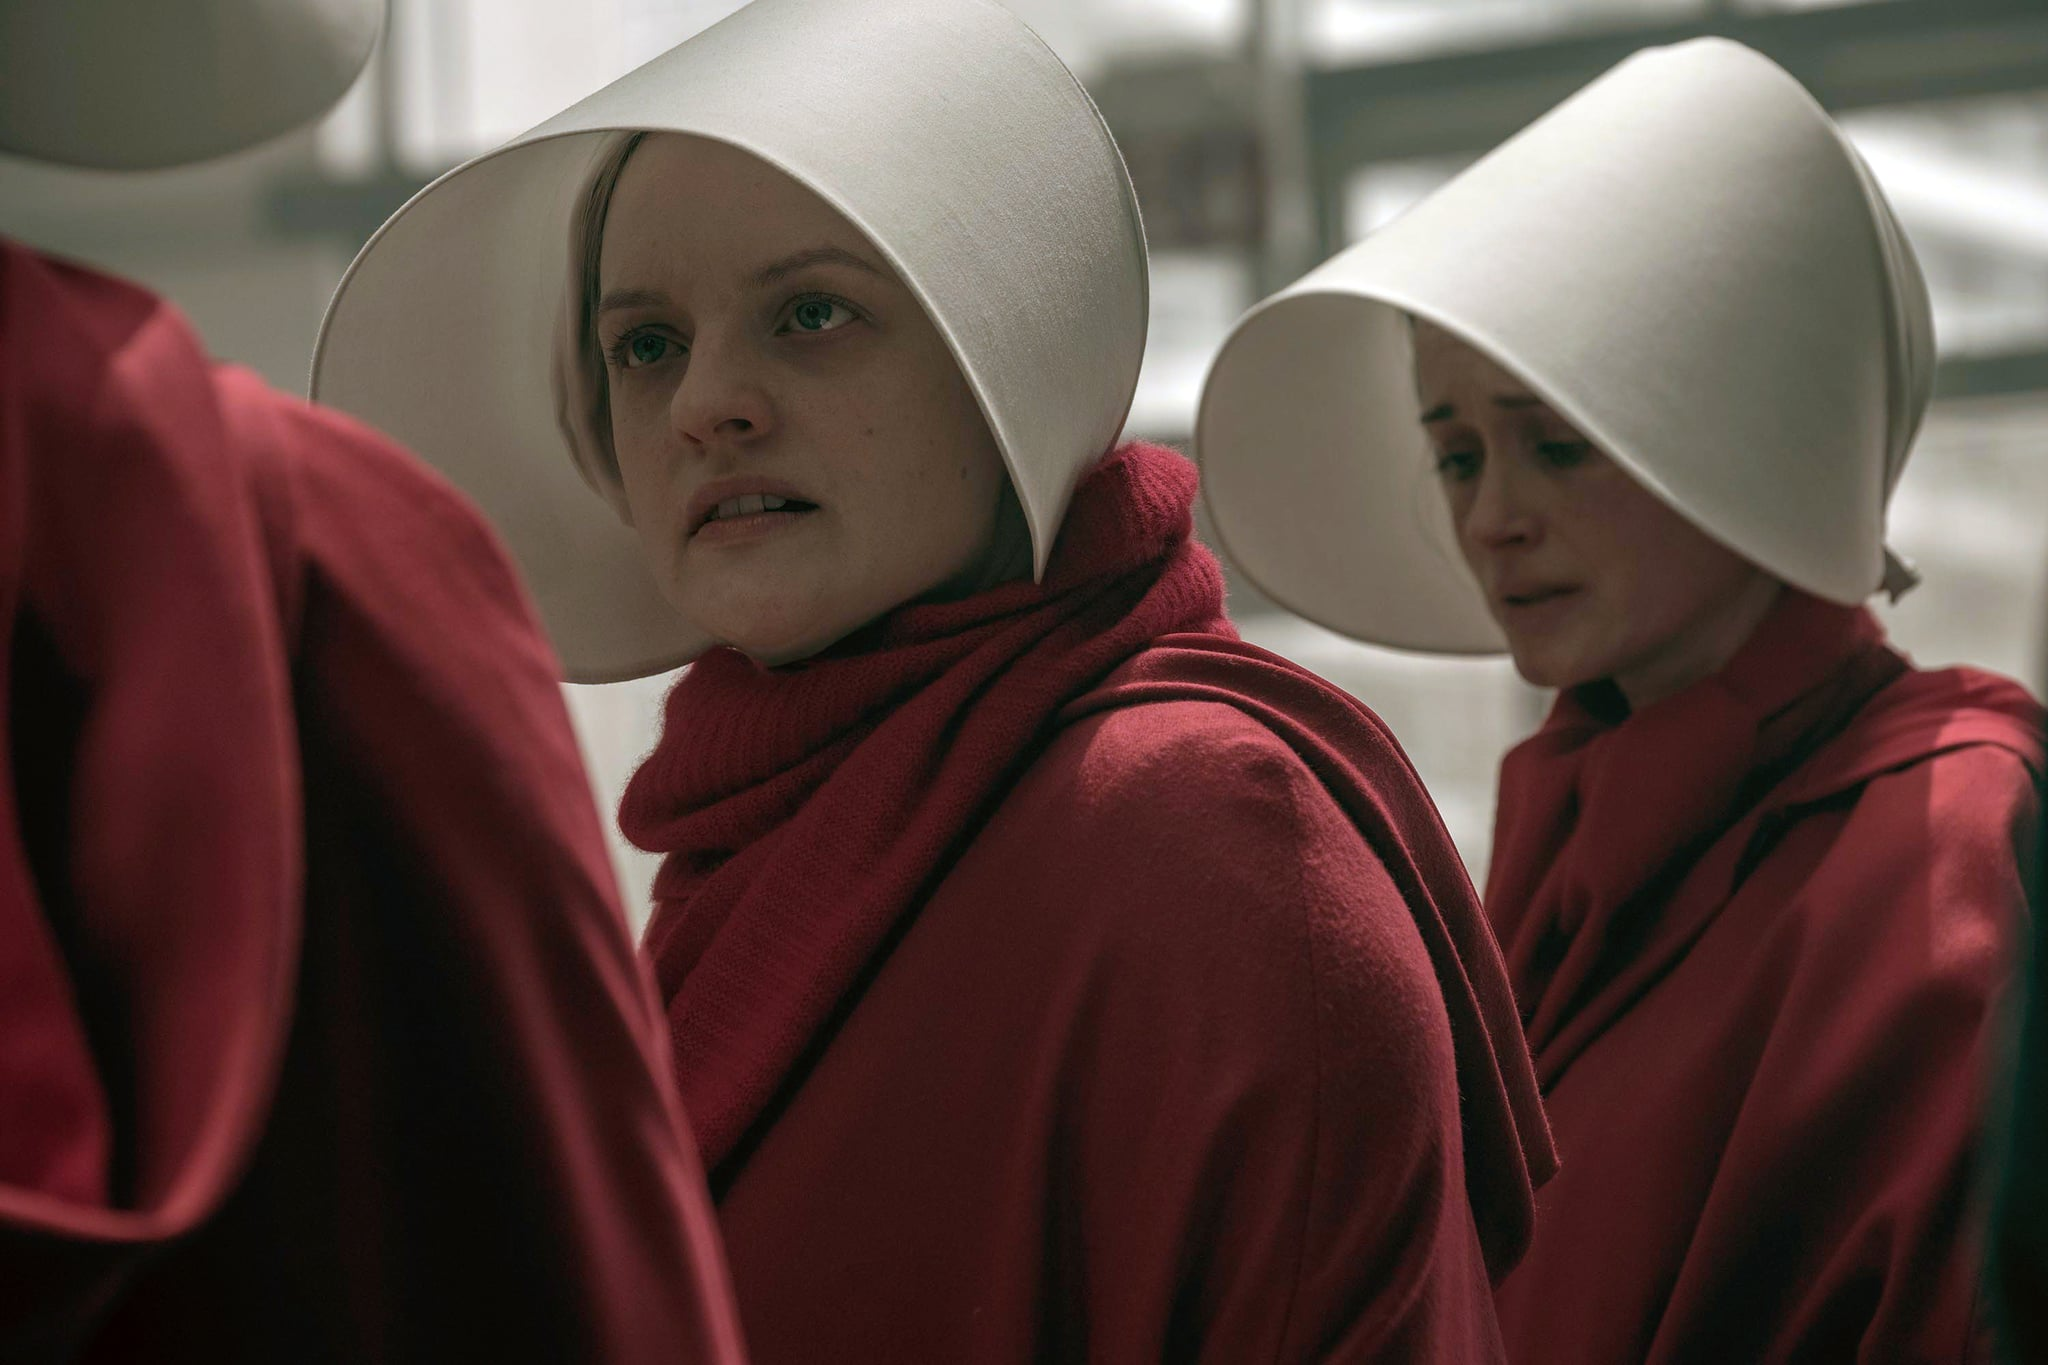 THE HANDMAID'S TALE, from left: Elisabeth Moss, Alexis Bledel, 'After', (Season 2, ep. 207, aired May 30, 2018). photo: Hulu / courtesy Everett Collection